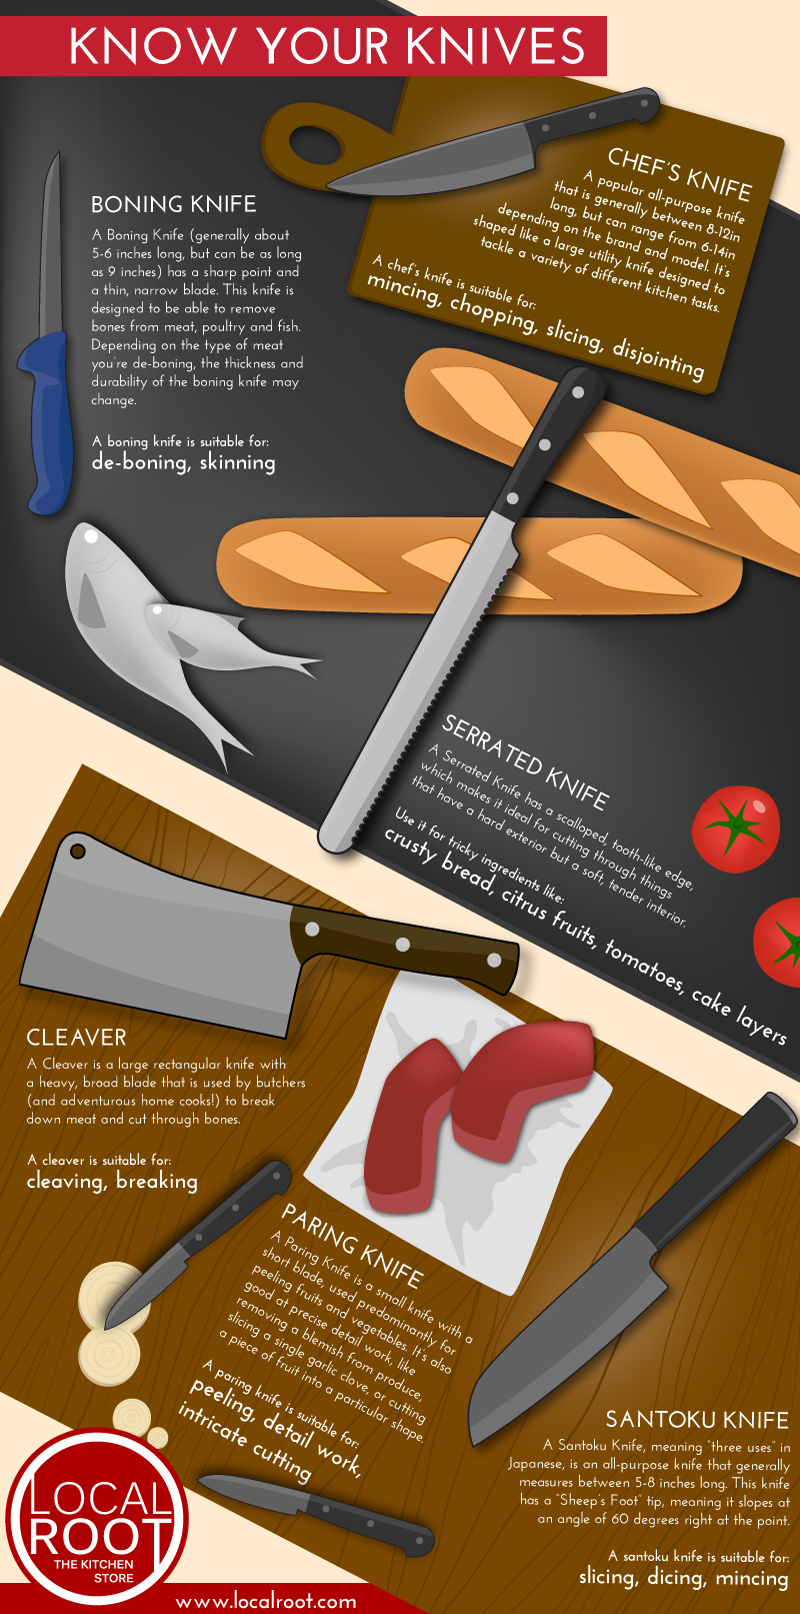 Knife-Infographic.jpg